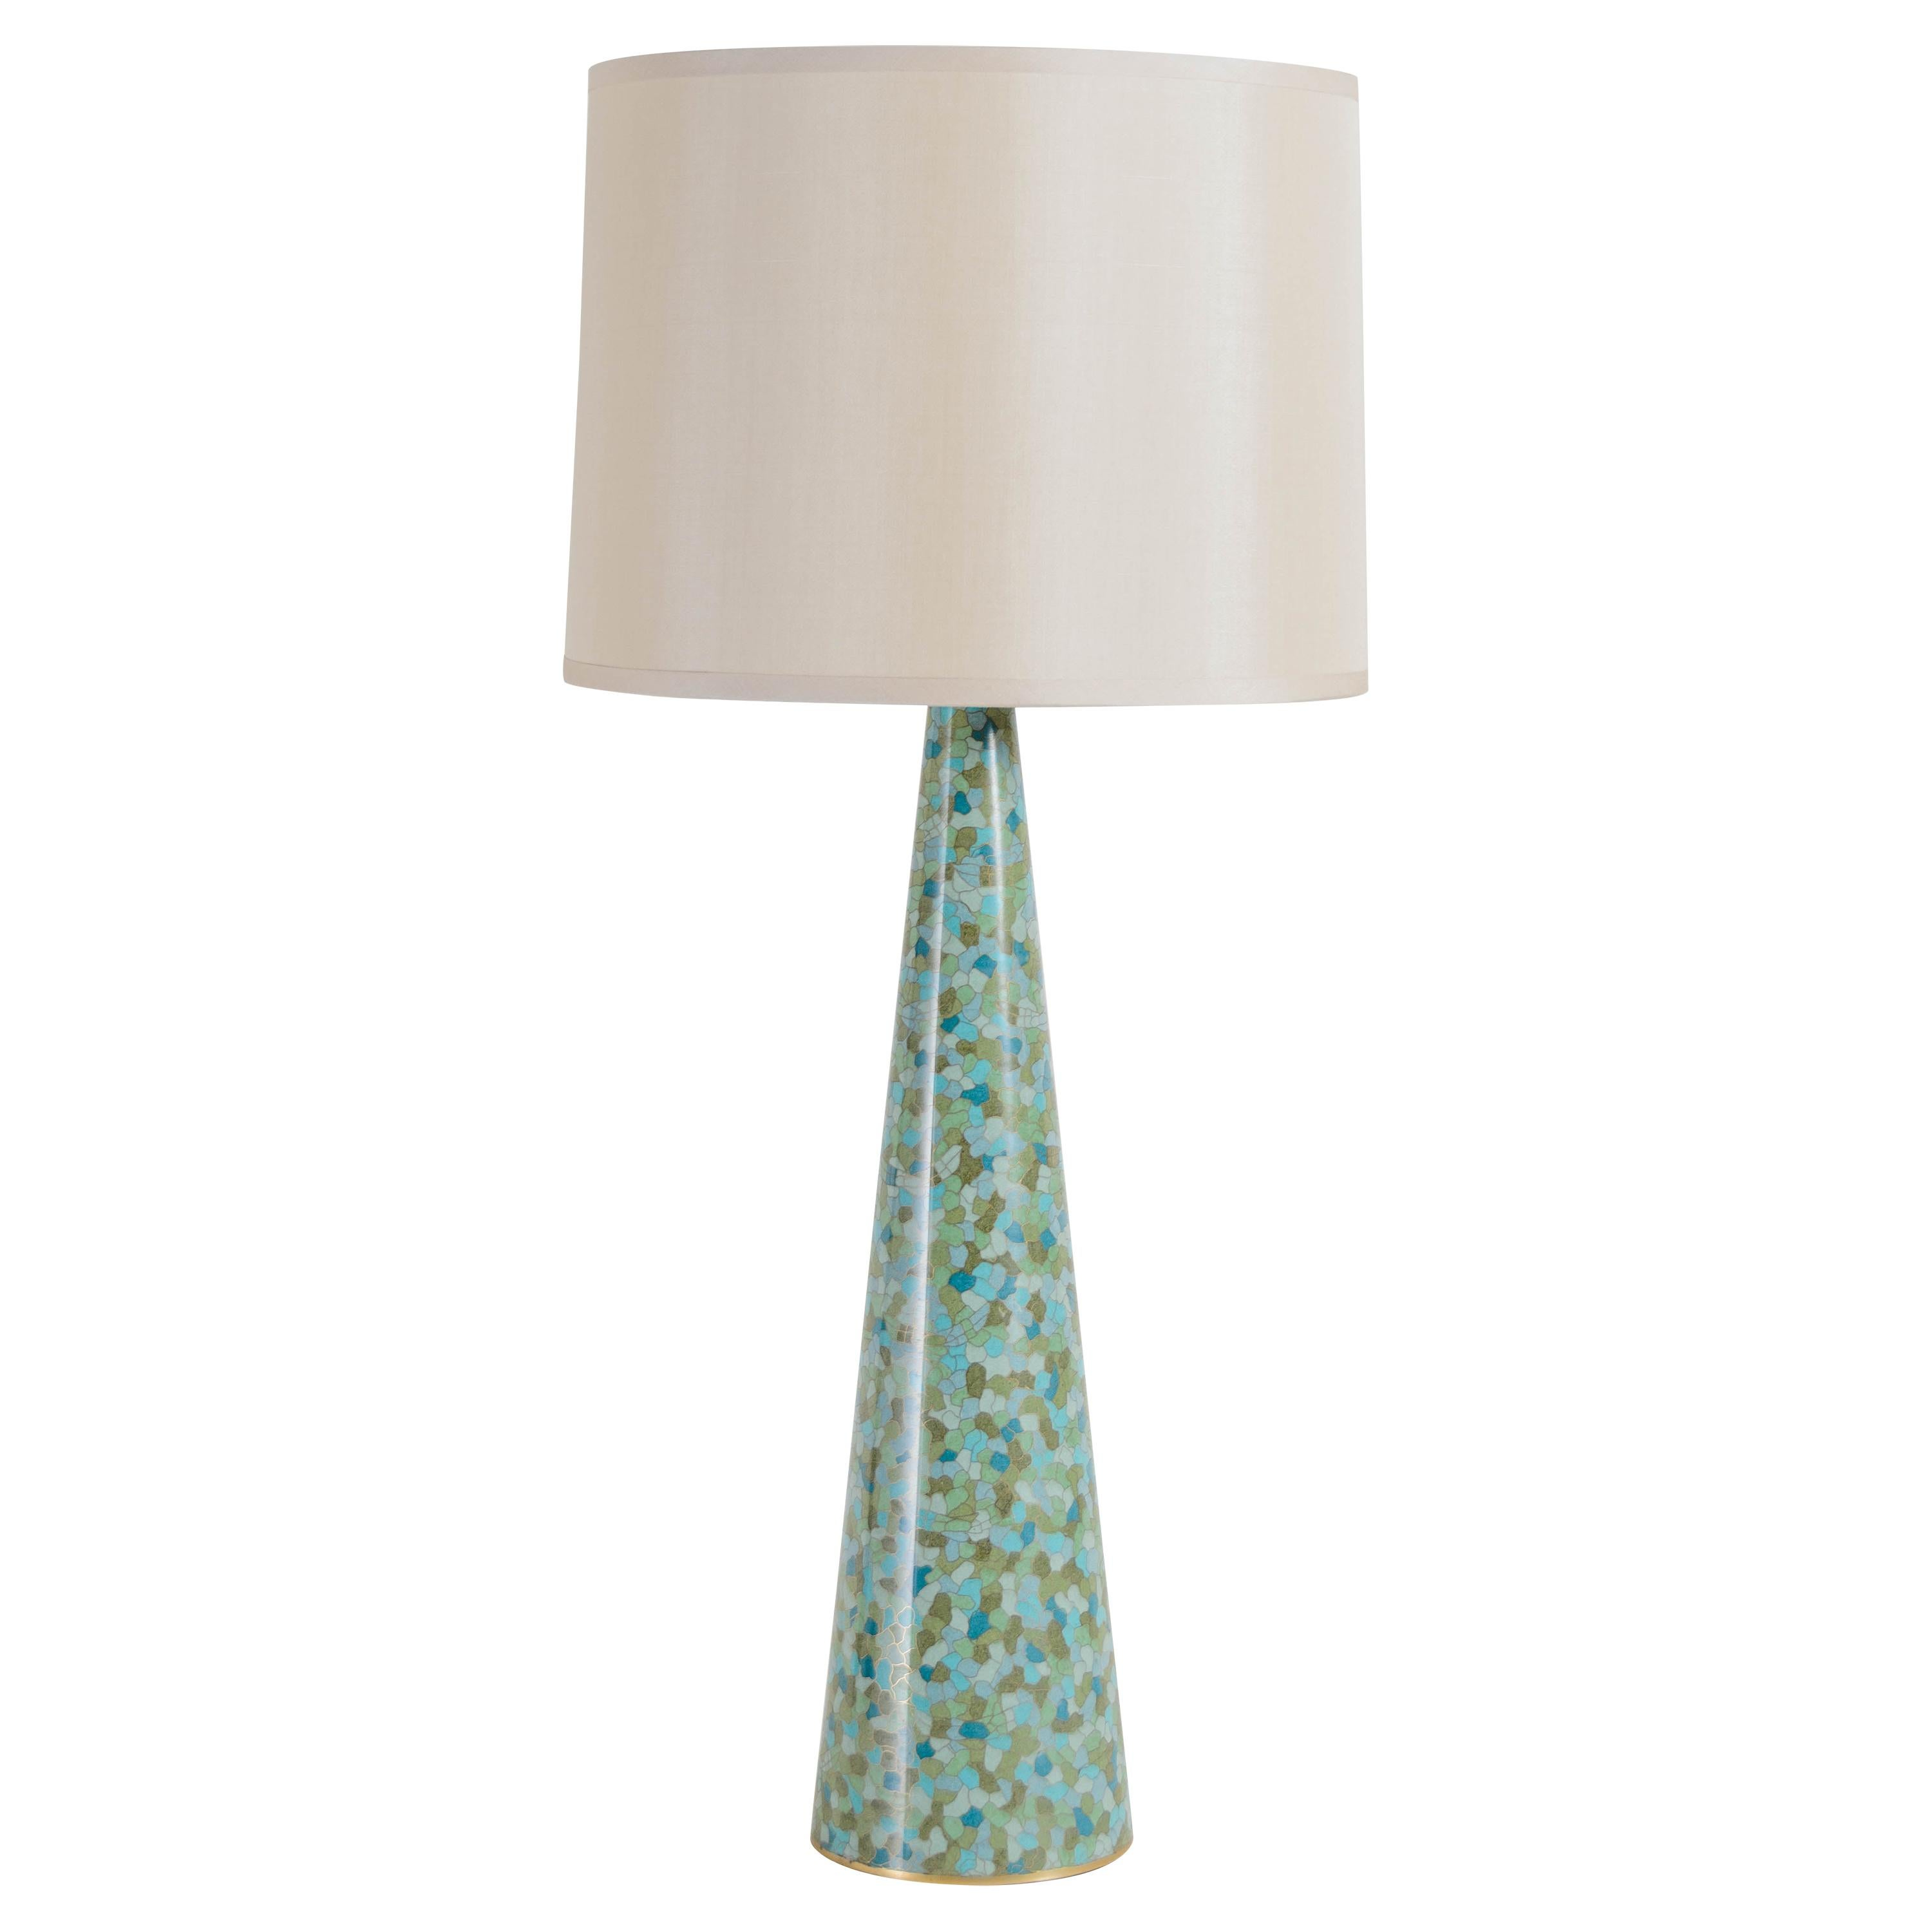 Contemporary Cloisonné Conical Table Lamp in Azure Design by Robert Kuo